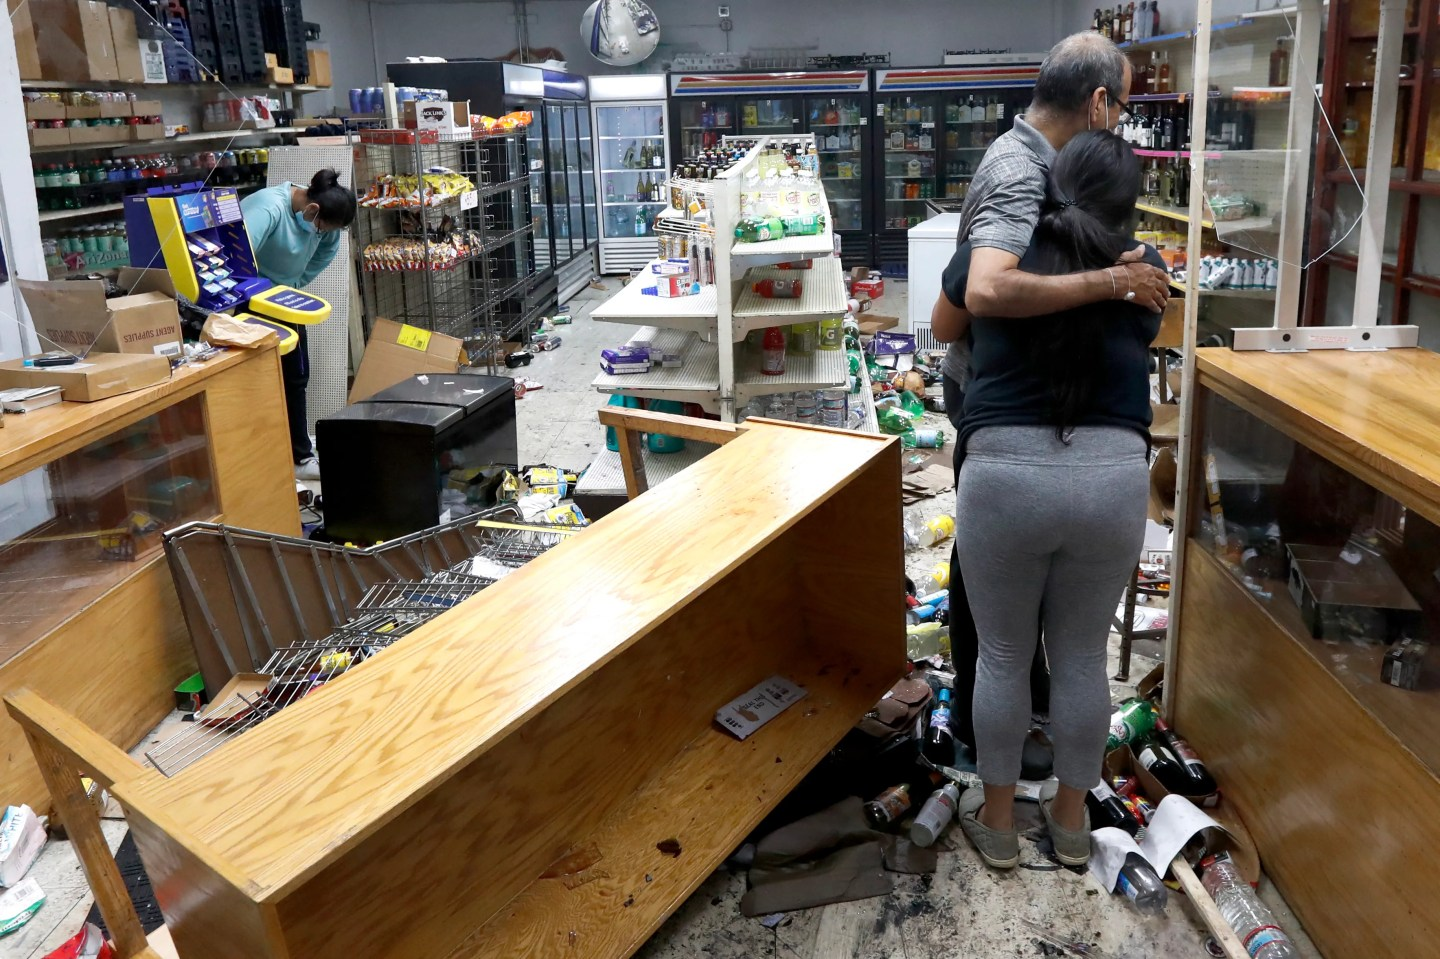 Yogi Dalal hugs his daughter Jigisha as his other daughter Kajal, left, bows her head at the family food and liquor store Monday, Aug. 10, 2020, after the family business was vandalized in Chicago.